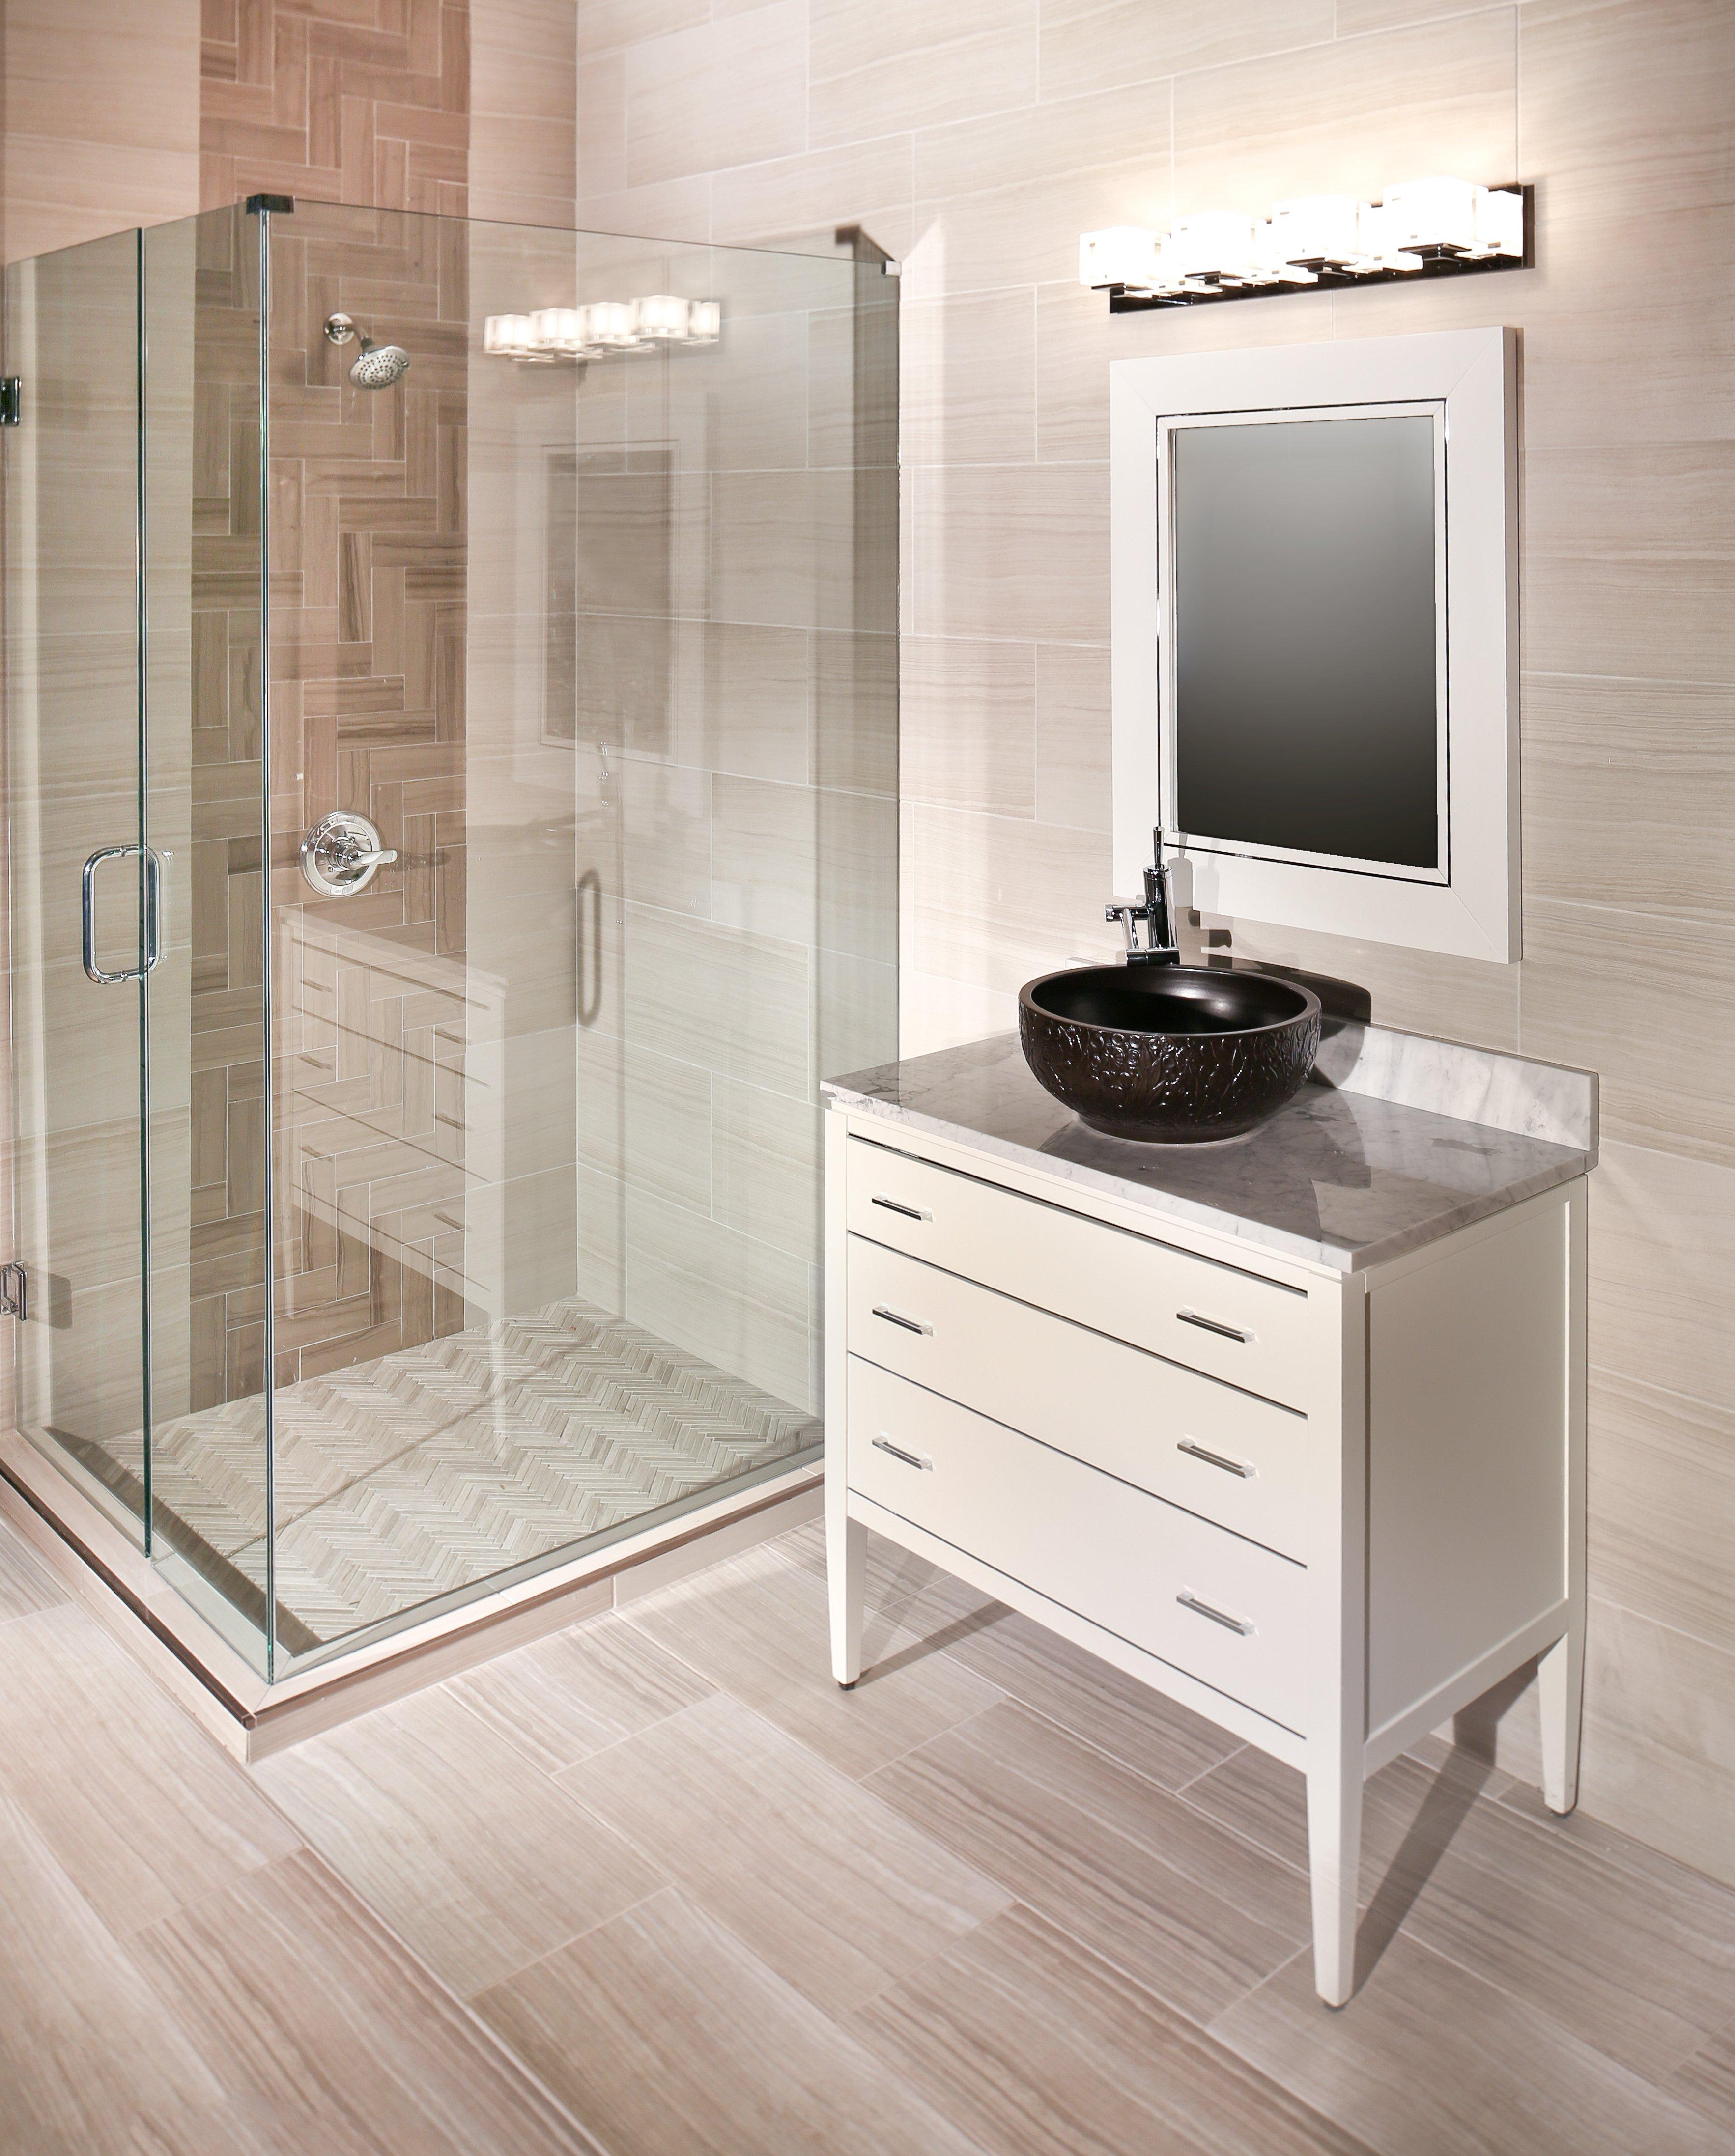 Porcelain Tile For Bathroom If You Want Your Bathroom Floor To Be – White Porcelain Tile Bathroom